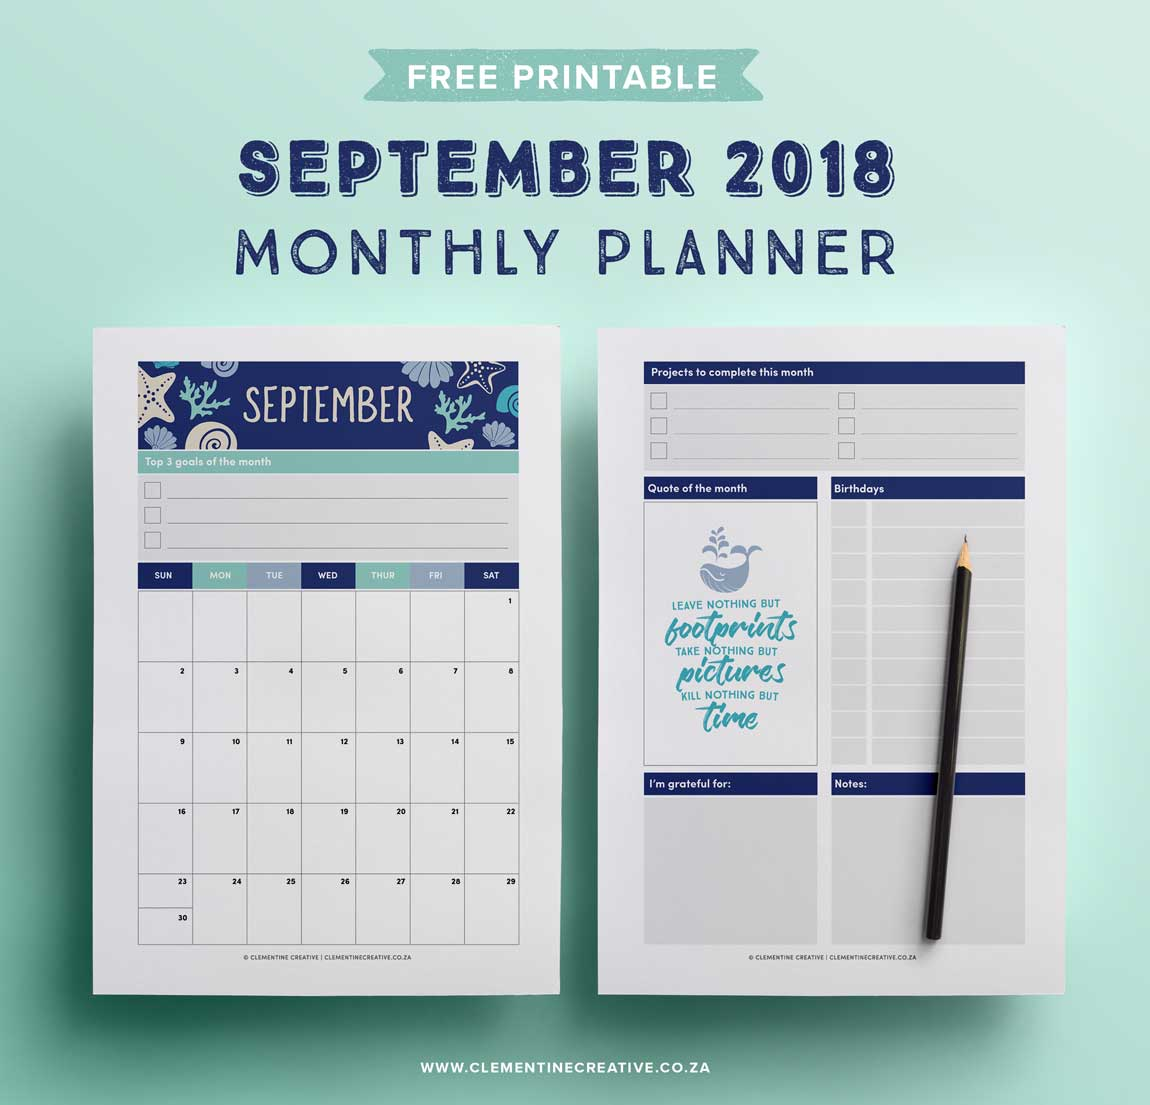 September 2018 free printable calendar and monthly planner. Click here to download!